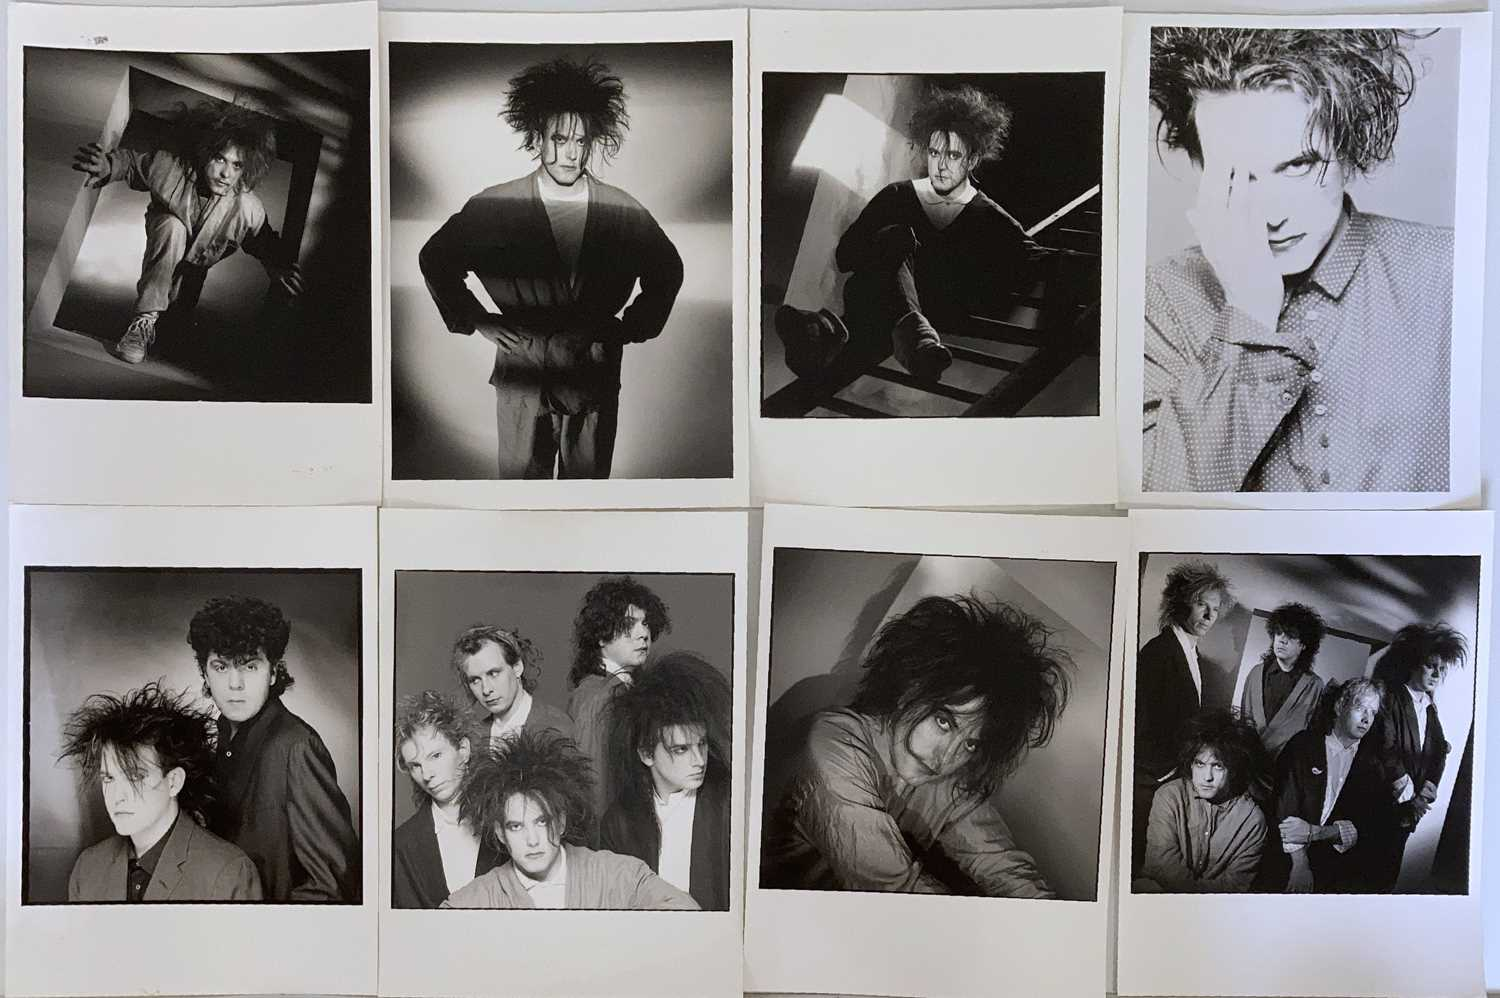 MUSIC PHOTOGRAPHS - THE CURE. - Image 5 of 5